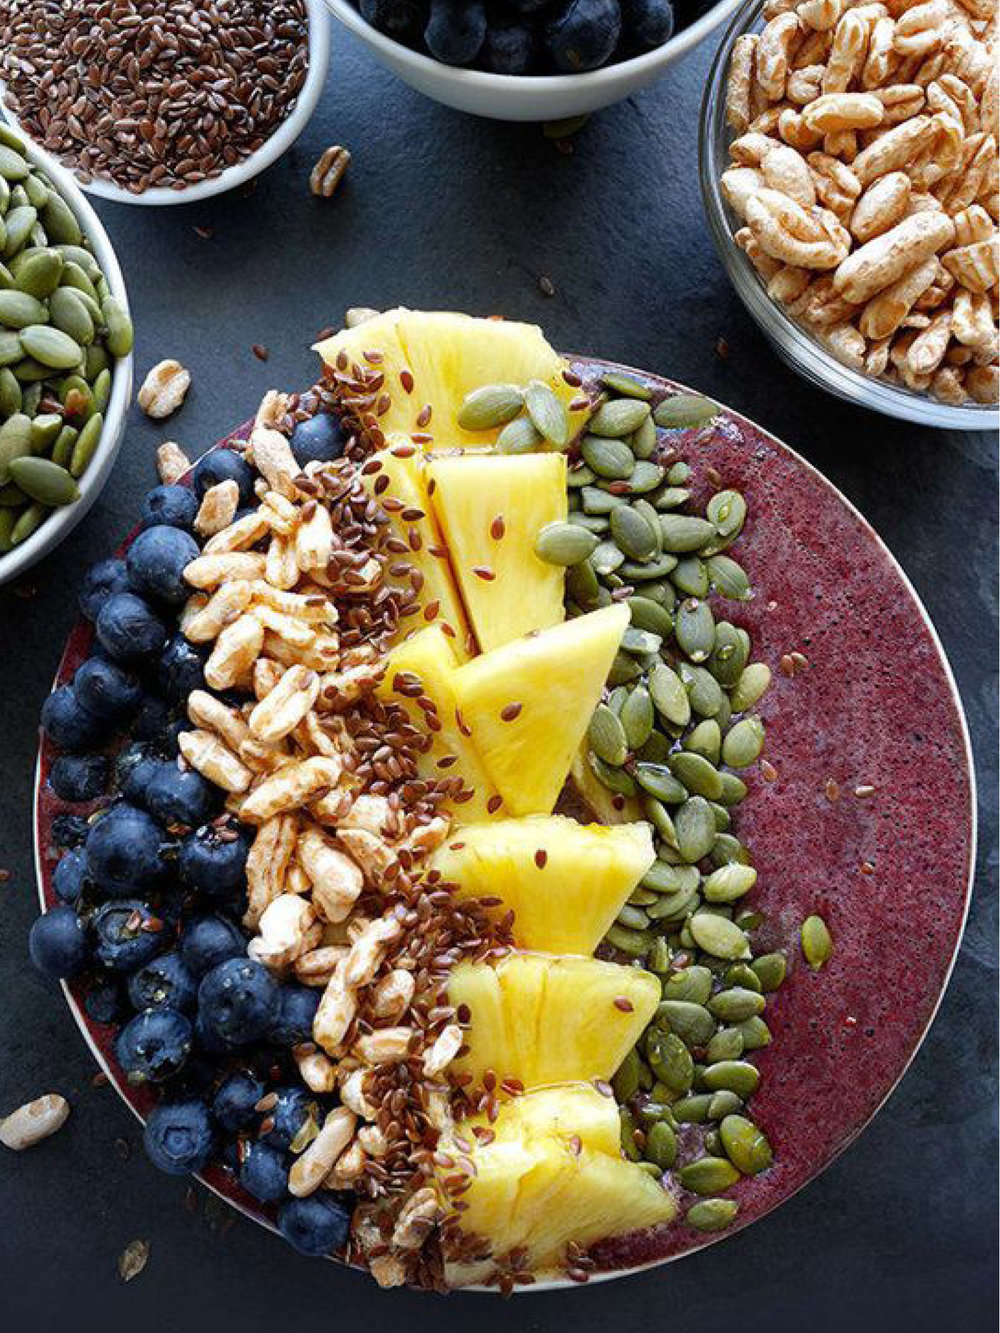 11 Breakfast Smoothie Bowls That Will Make You Feel Amazing  Buzzfeed